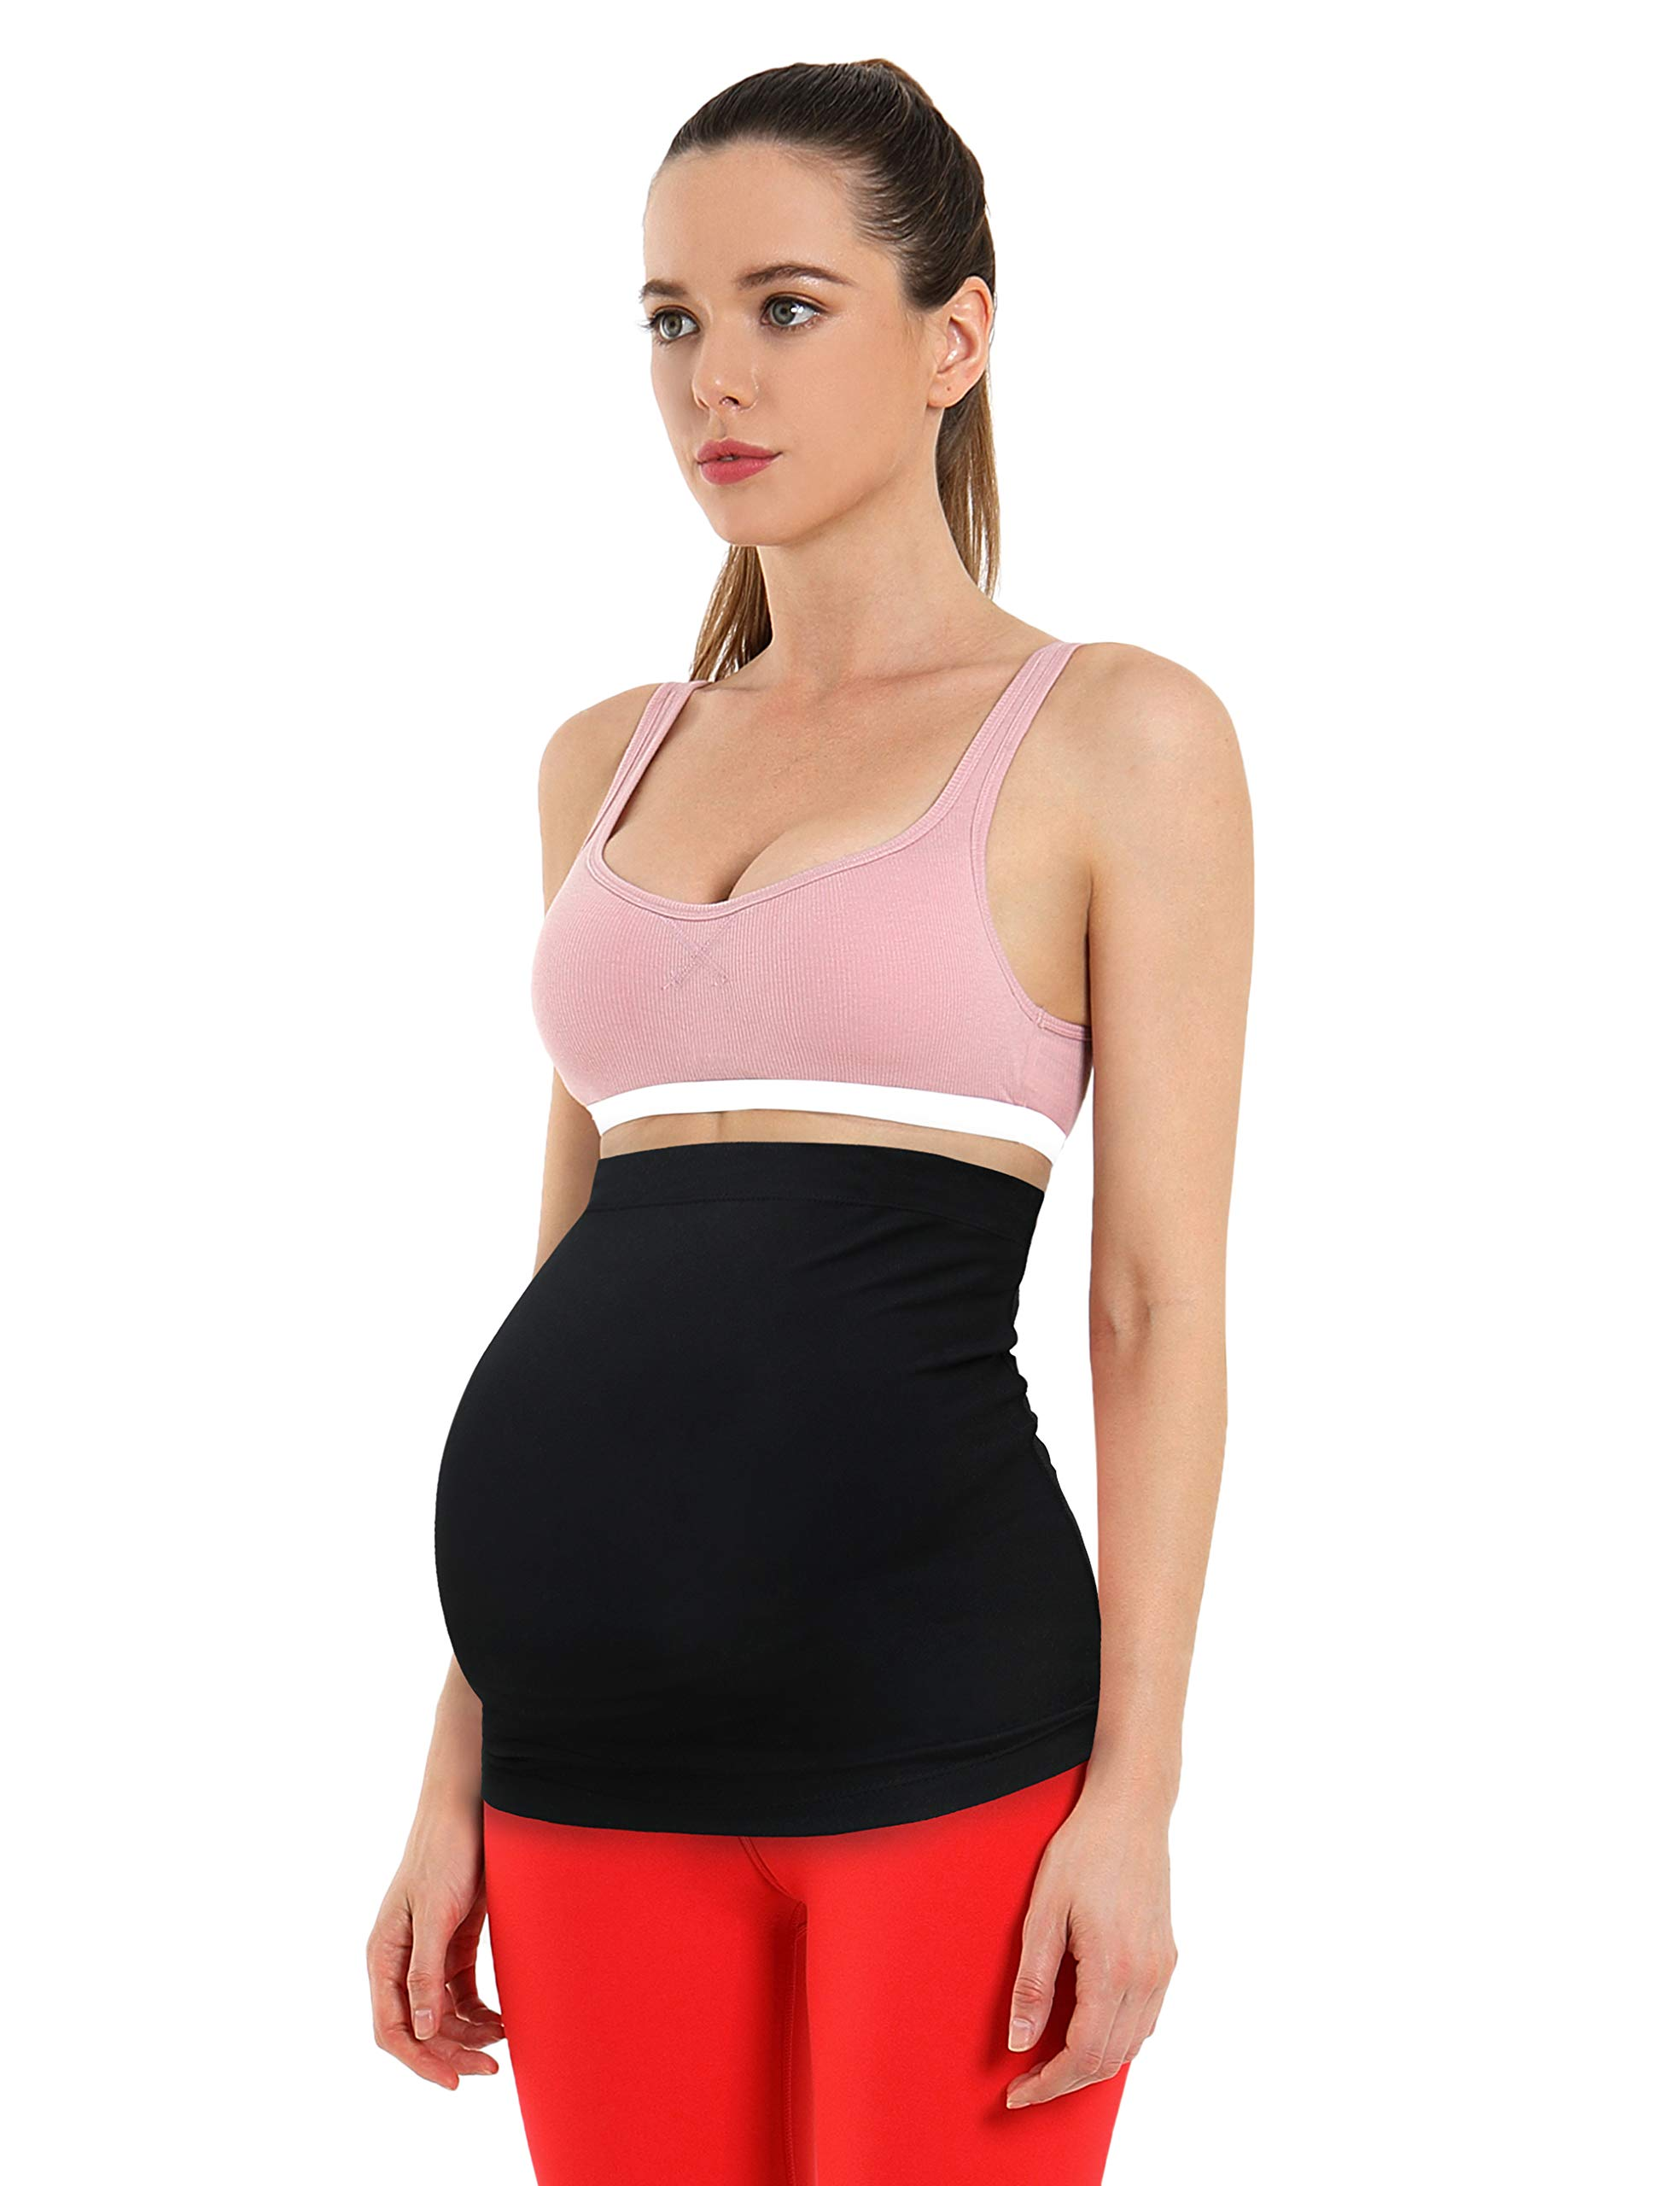 BUBBLELIME Women's Pregnancy Belly Band Soft Breathable Maternity Support for All Stages of Pregnancy and Postpartum